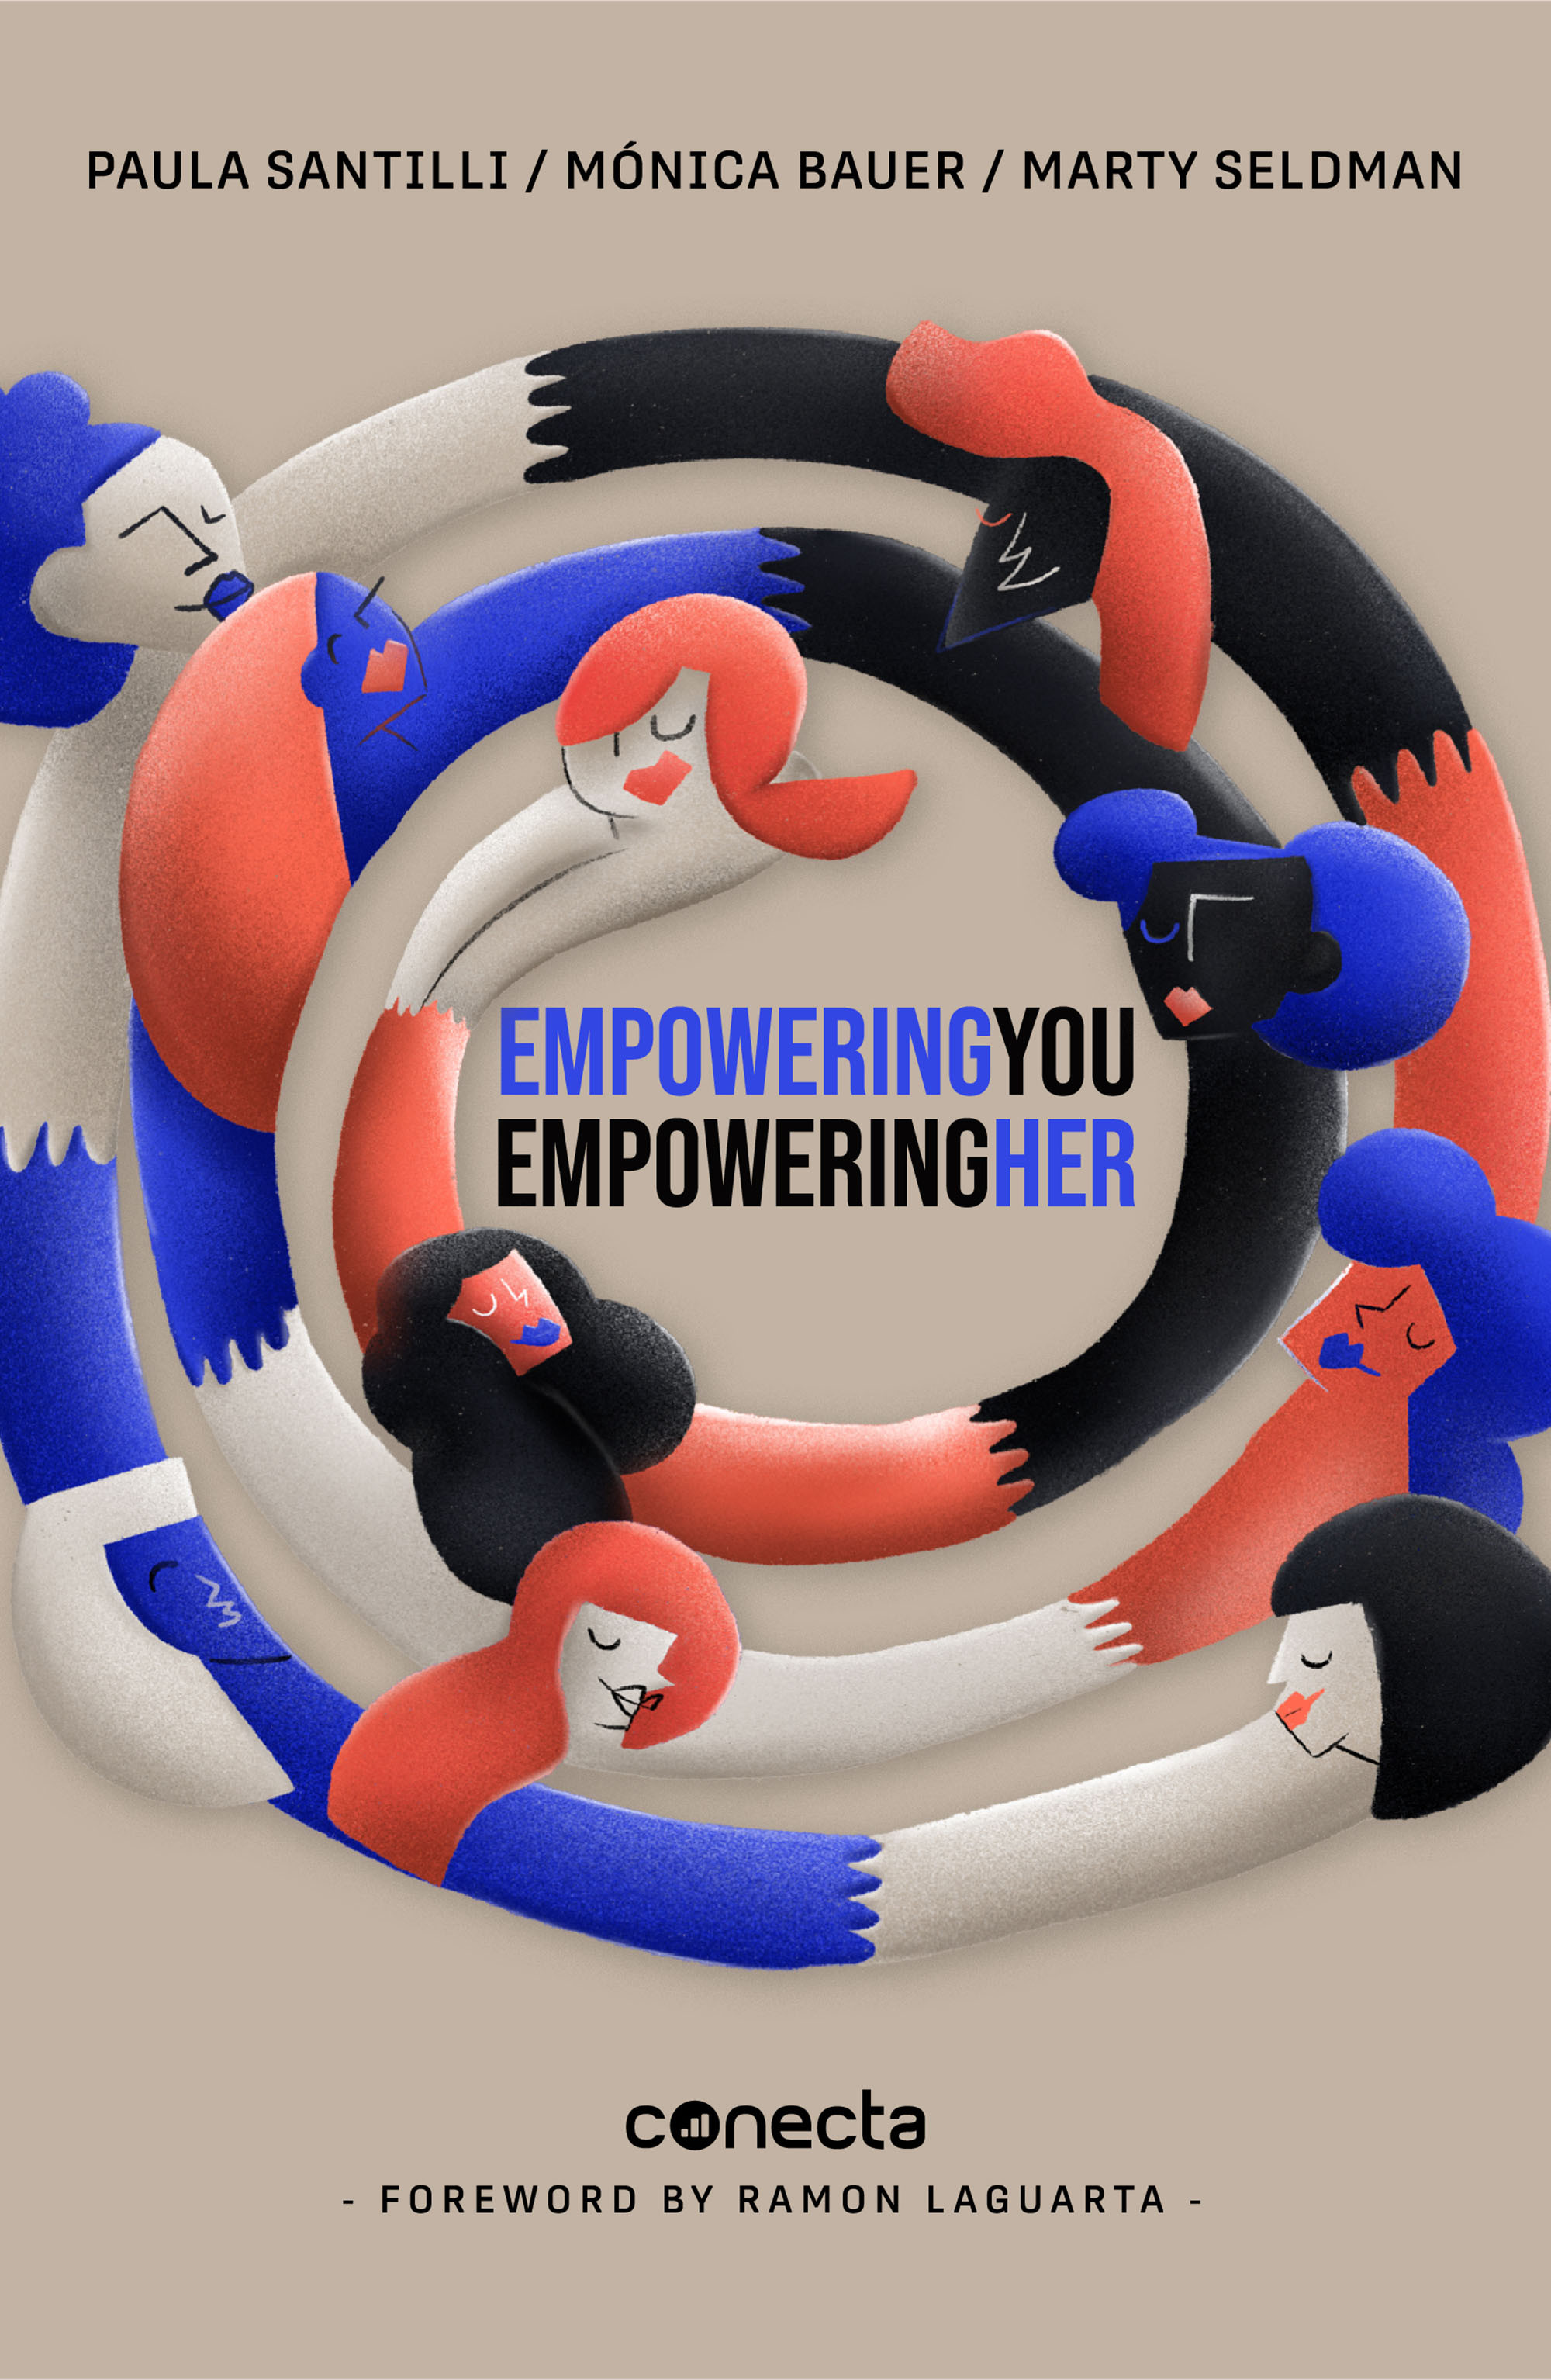 Empowering you, empowering her